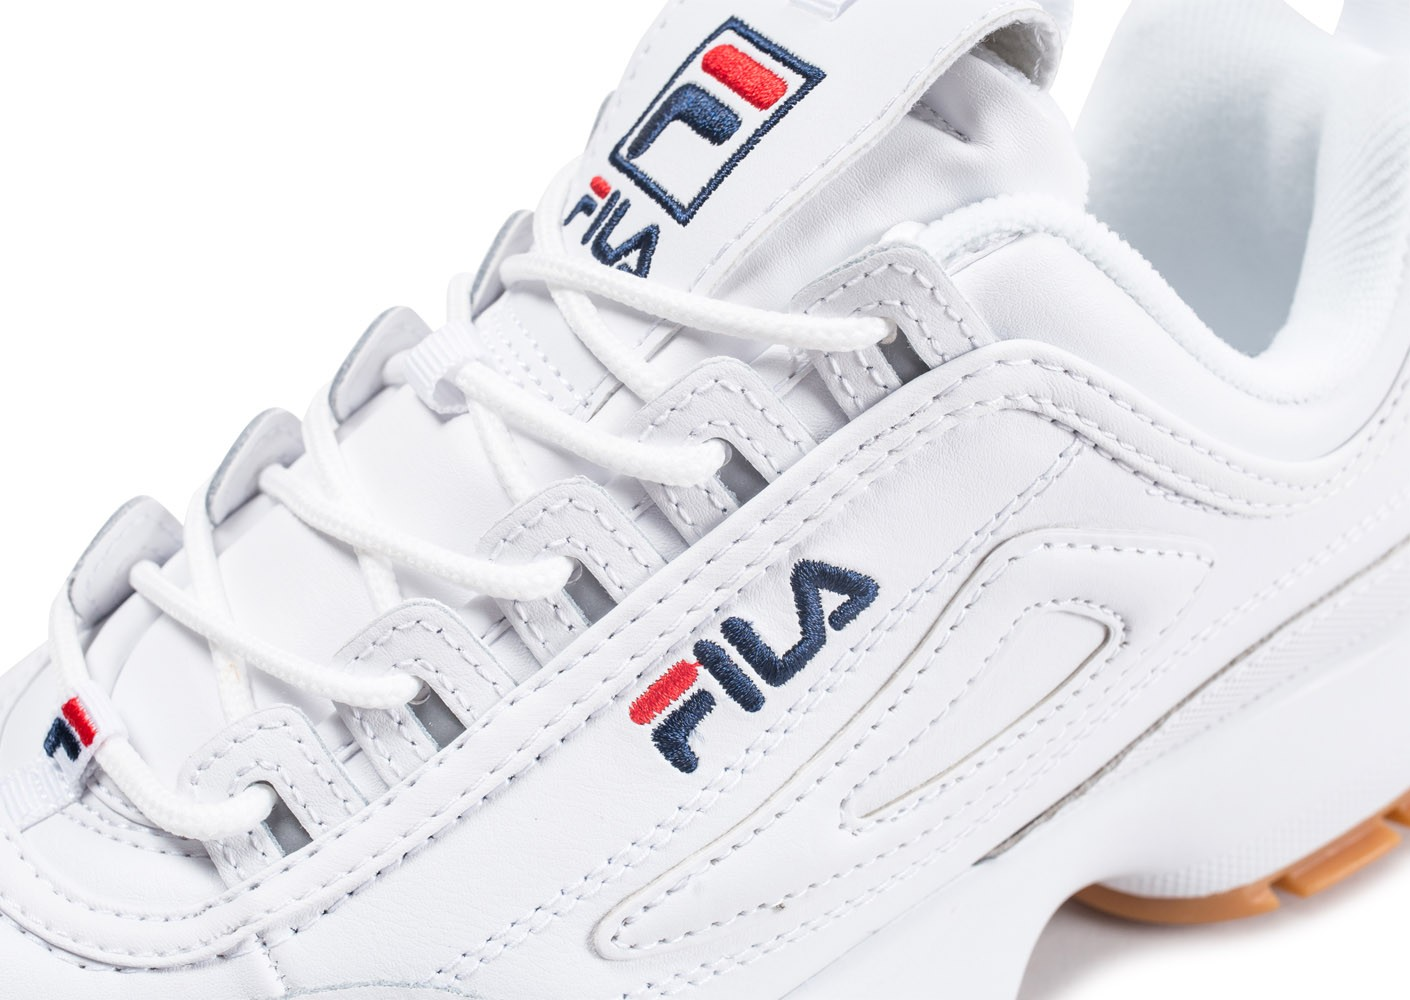 Chaussures Premium Ii Fila Baskets Homme Blanche Chausport qwpwIxt